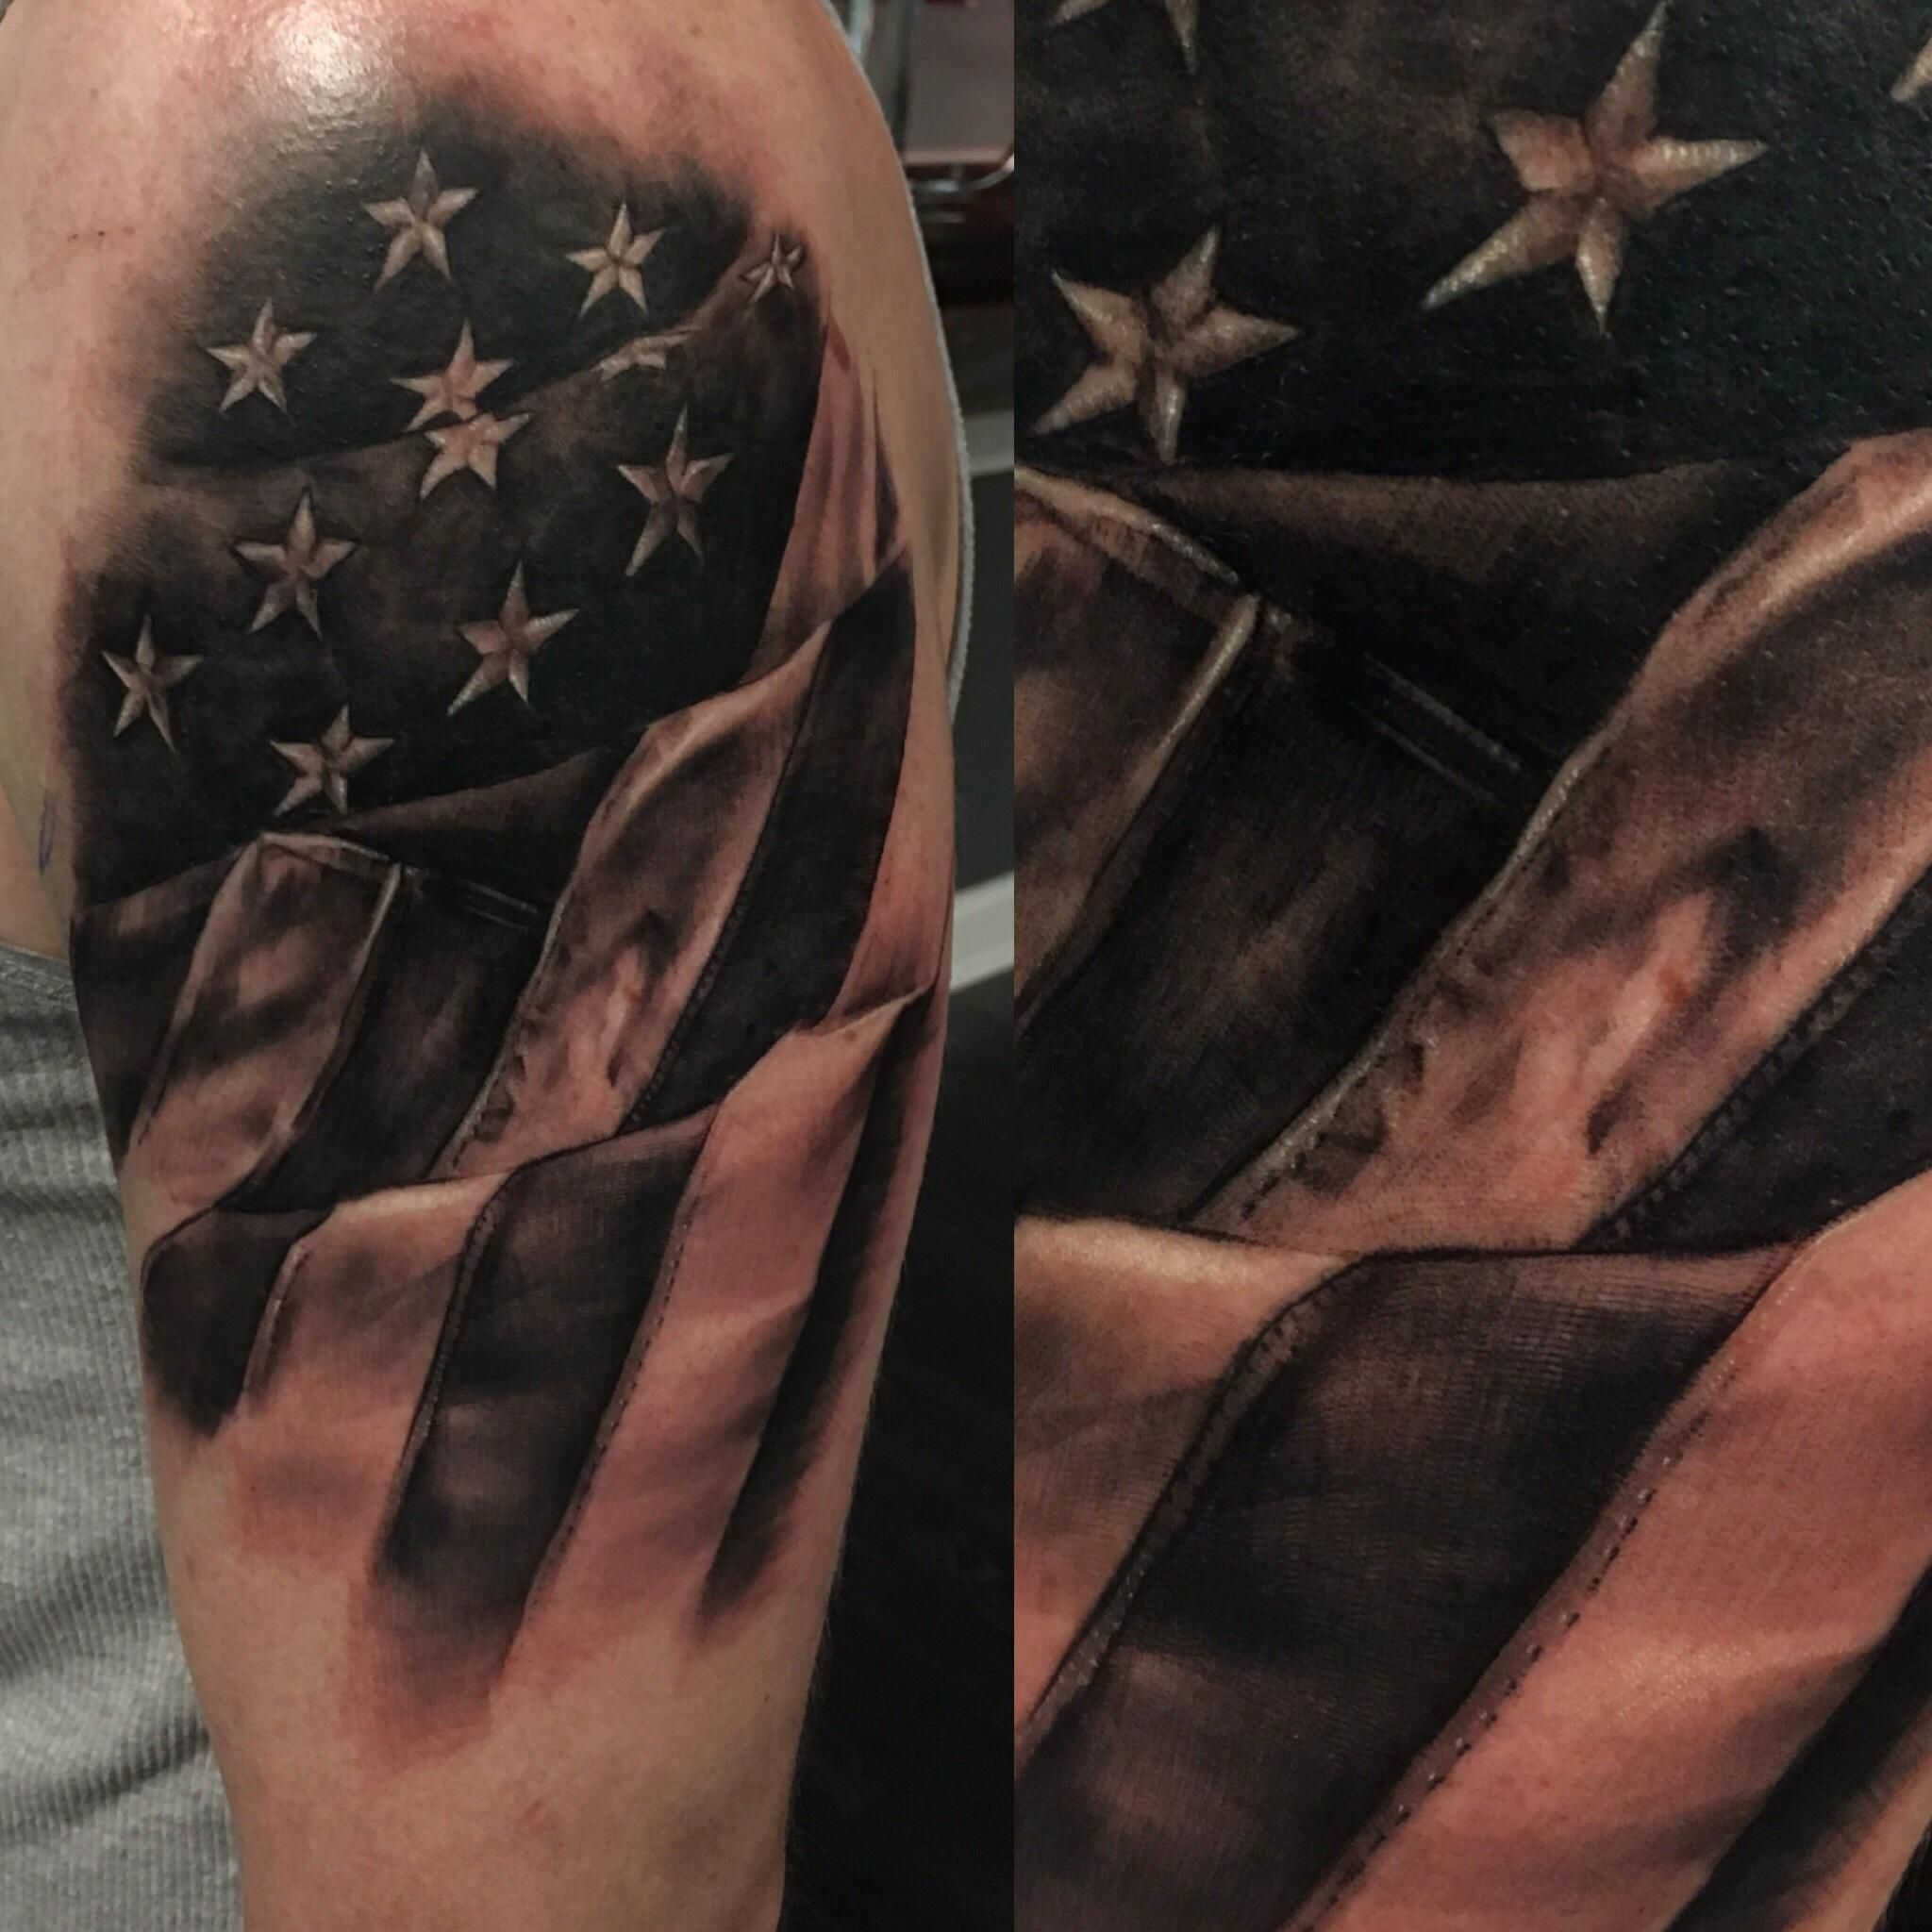 Flagdetails by apprentice andi victoria at karma theory tattoo in